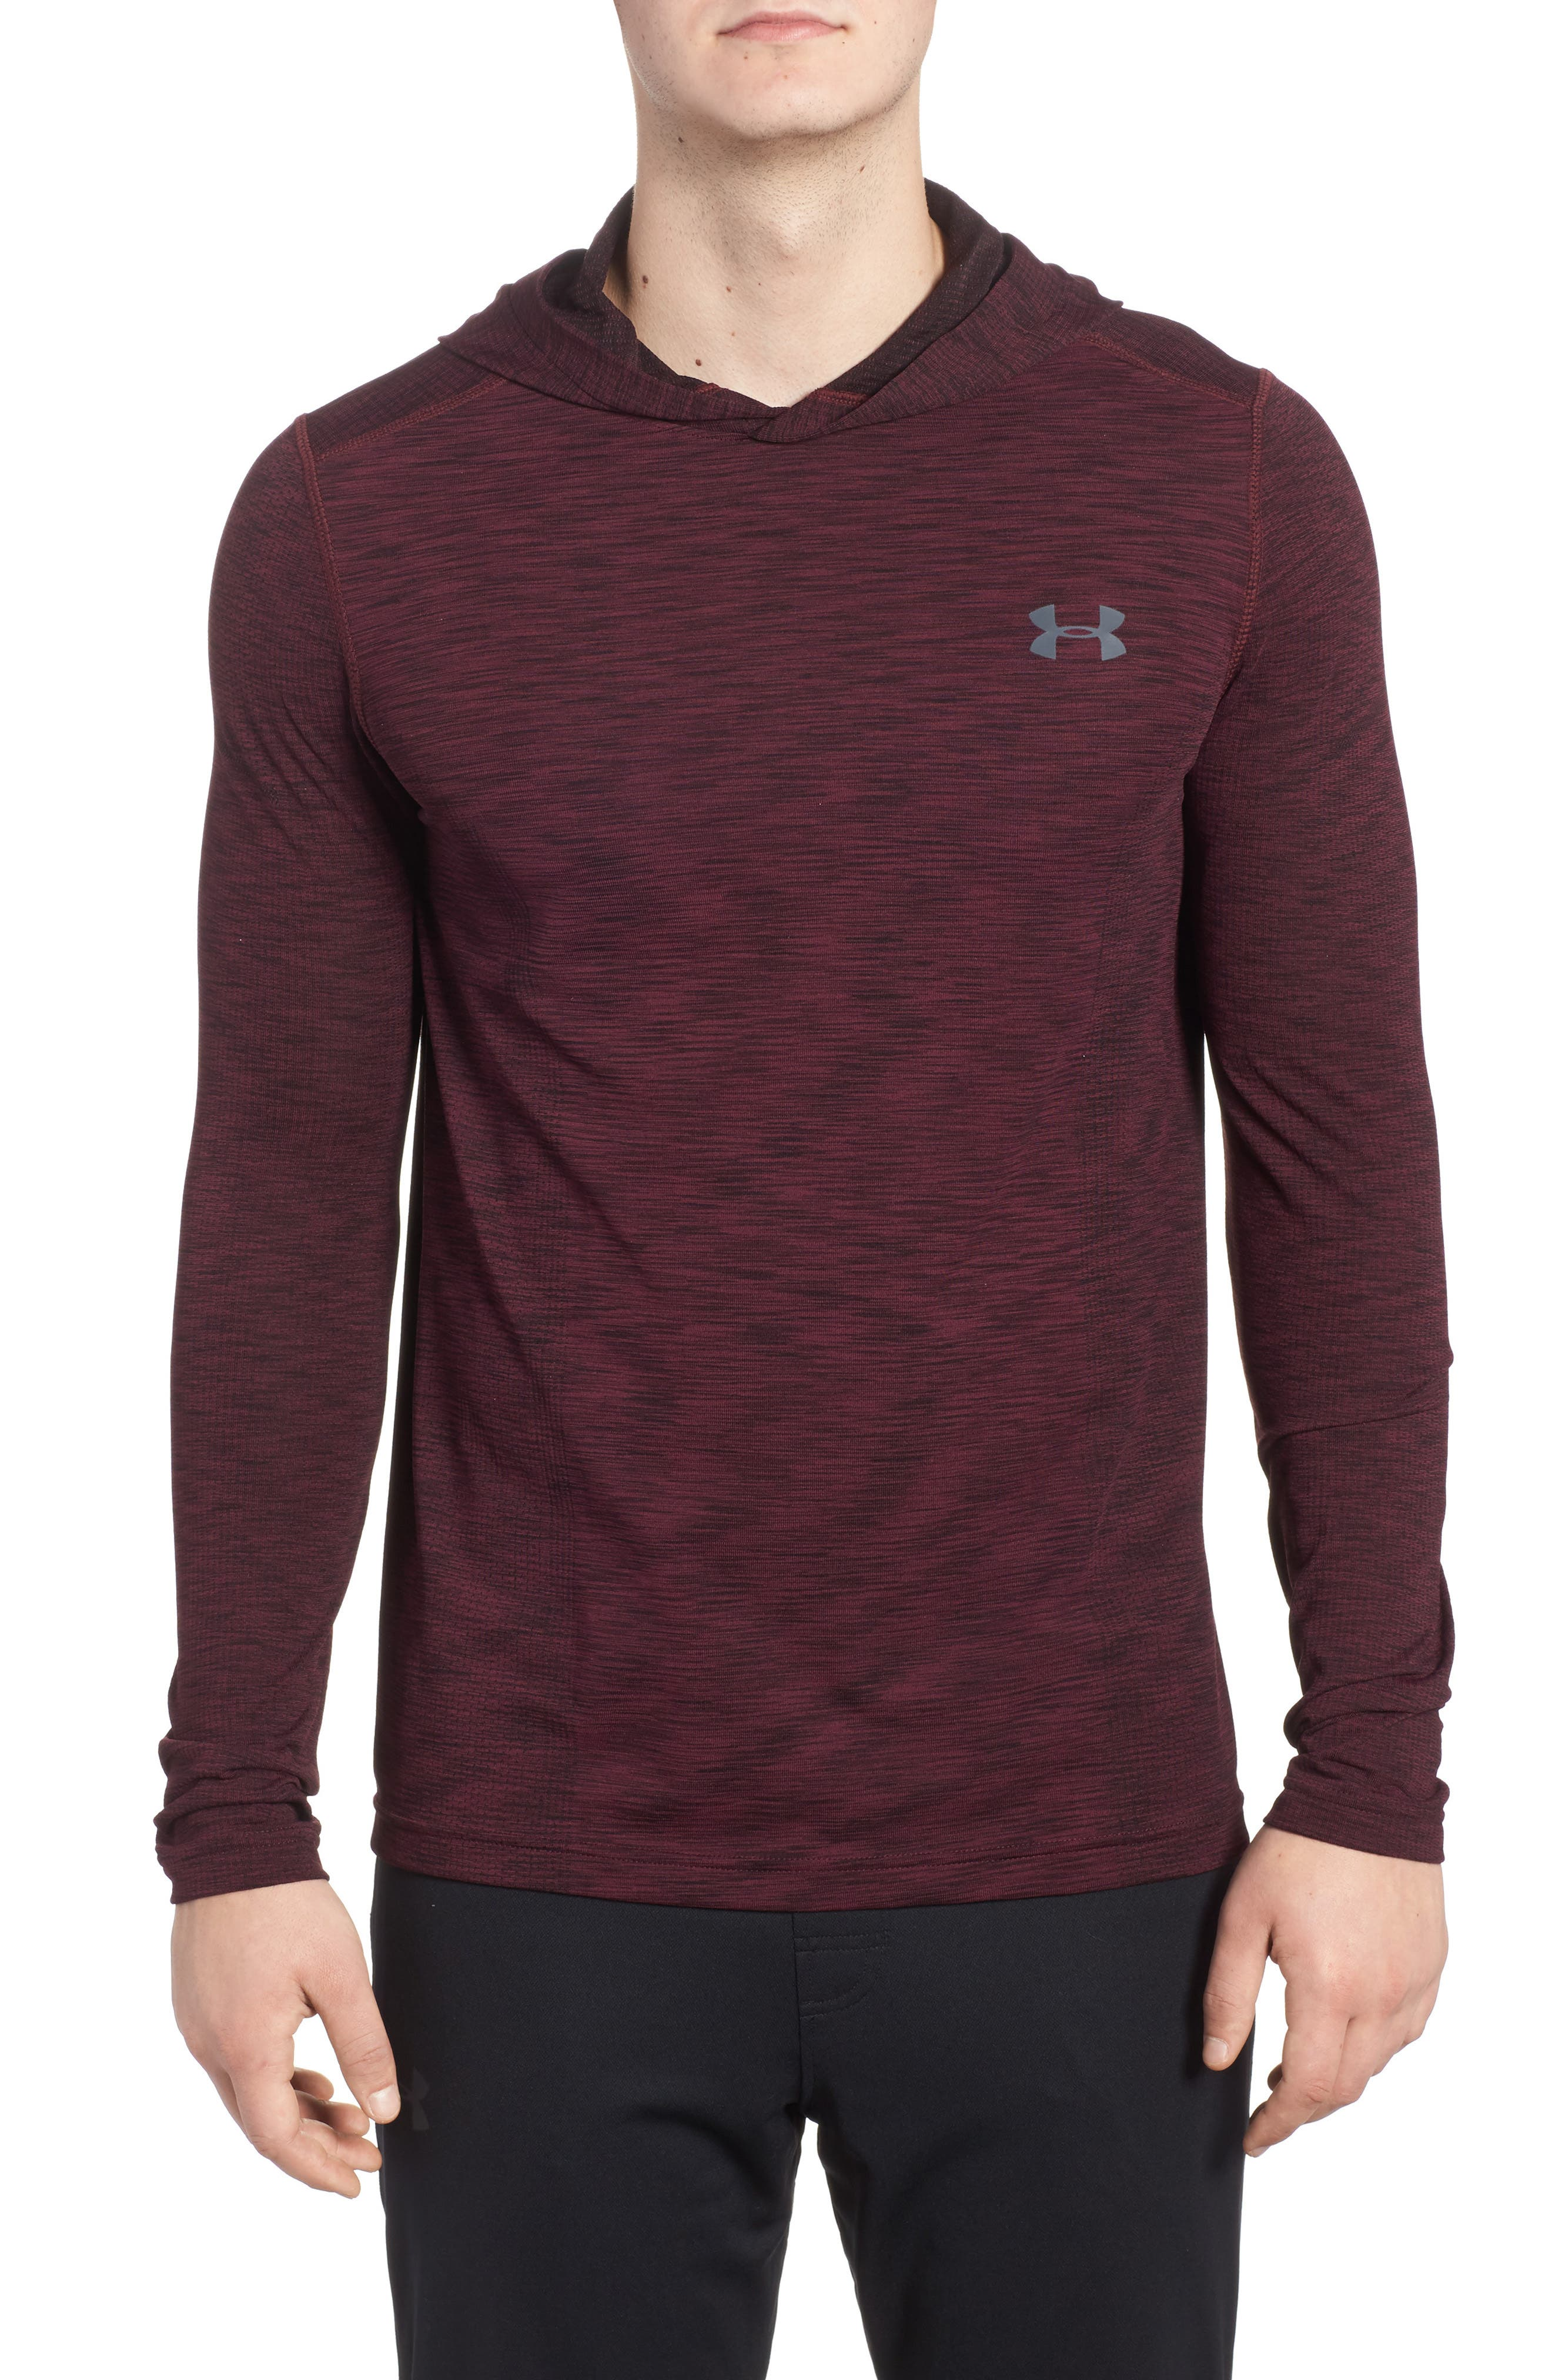 Threadbone Fitted Seamless Hoodie,                             Main thumbnail 1, color,                             Raisin Red / Stealth Grey